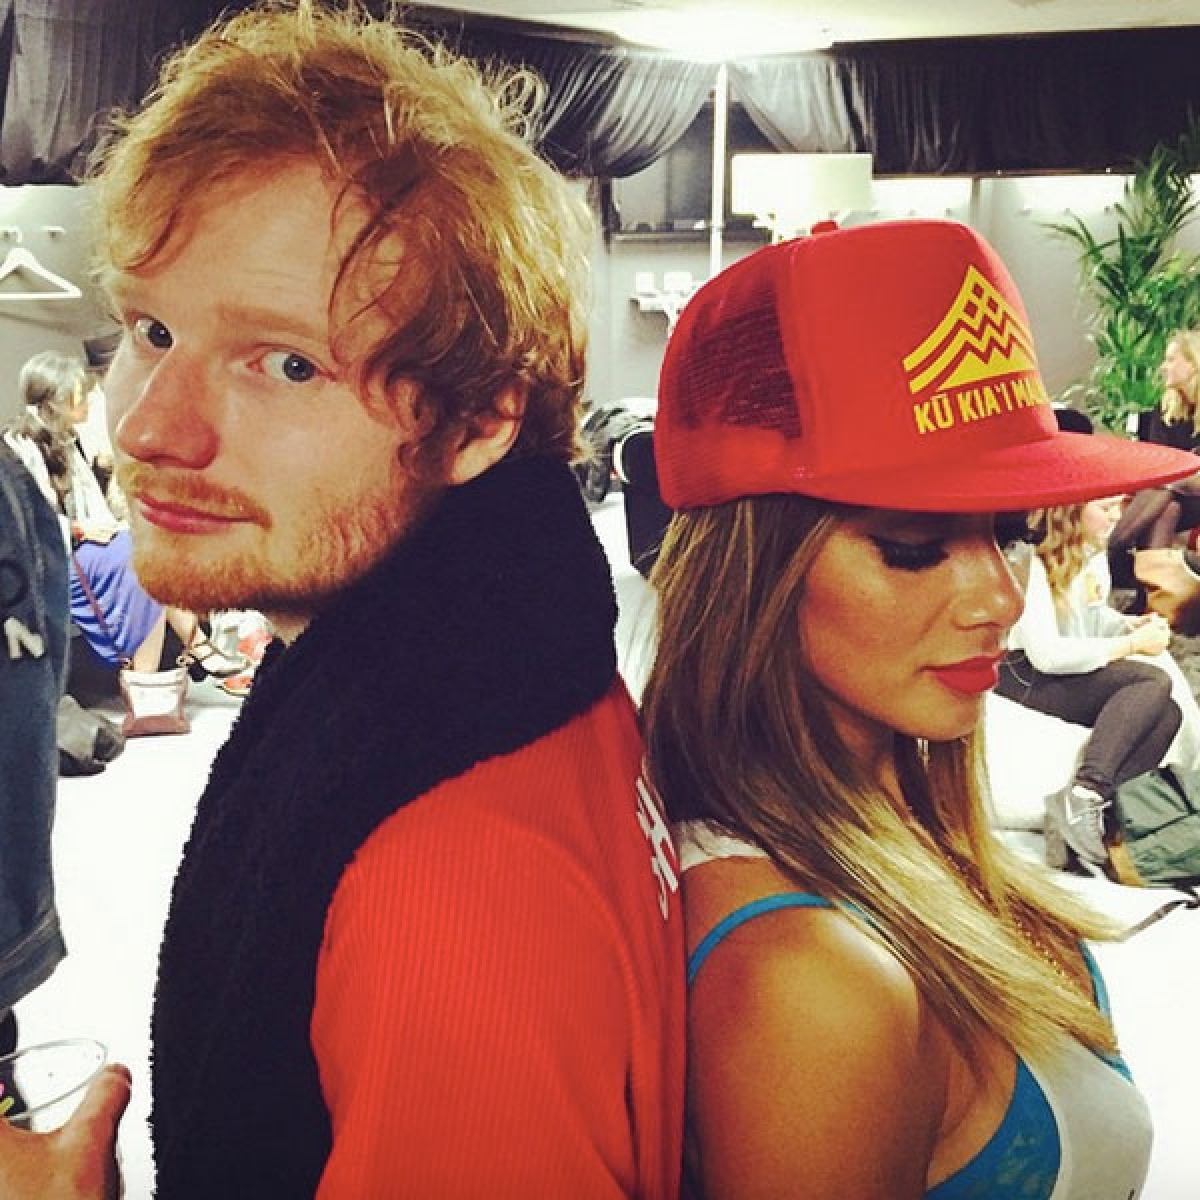 Ed Sheeran dating Nicole Scherzinger?